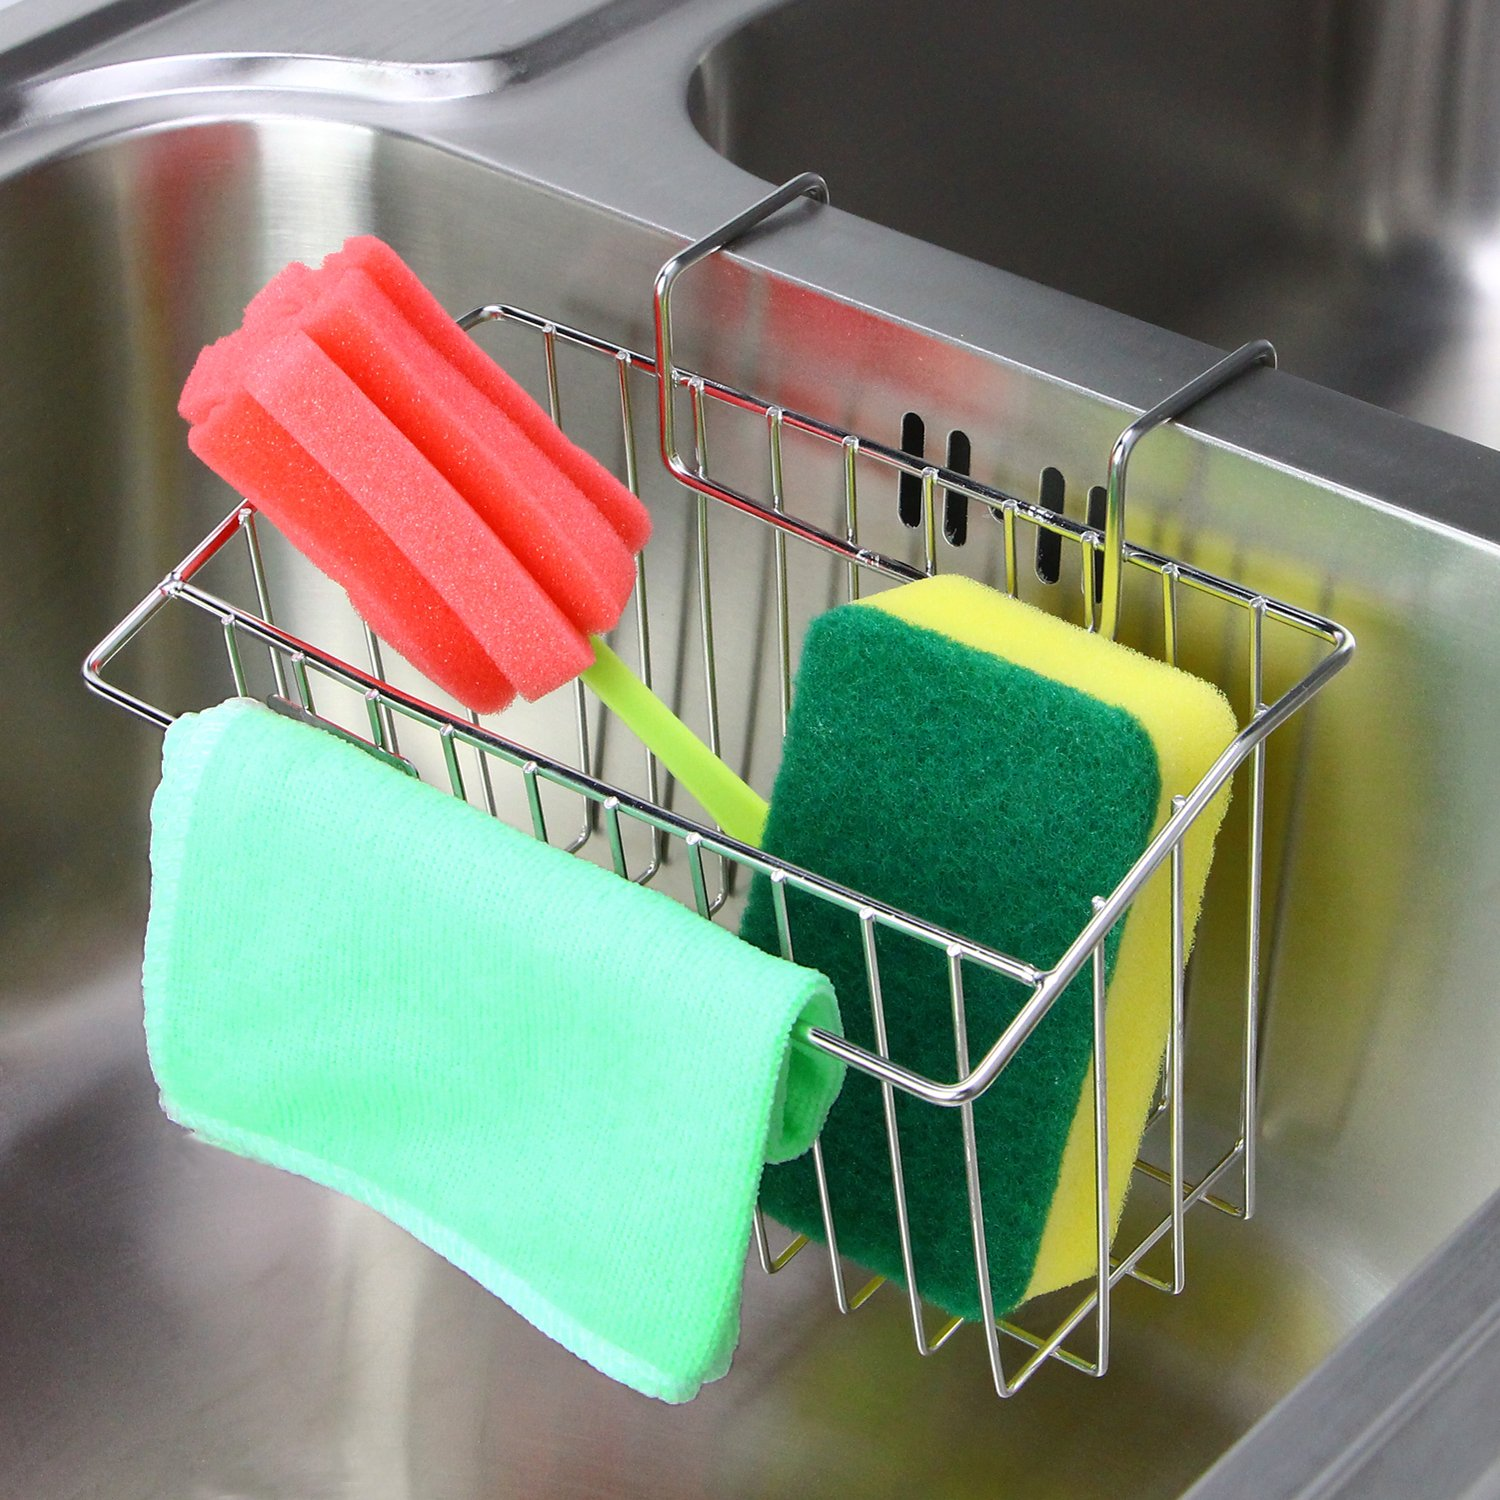 Aiduy Sink Caddy Kitchen Drainer Rack